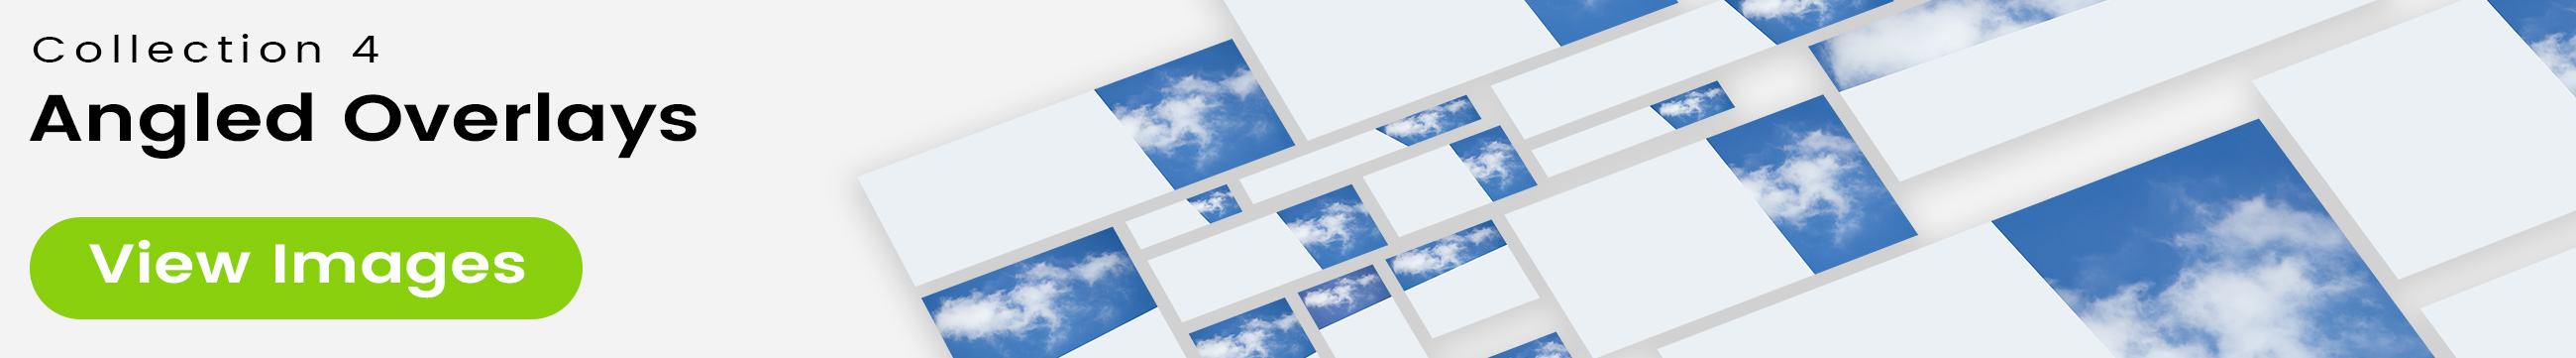 See 25 bonus images included with clouds stock image 9480. Collection 4 of 4 features an angled overlay design customized with a color that complements each photo.